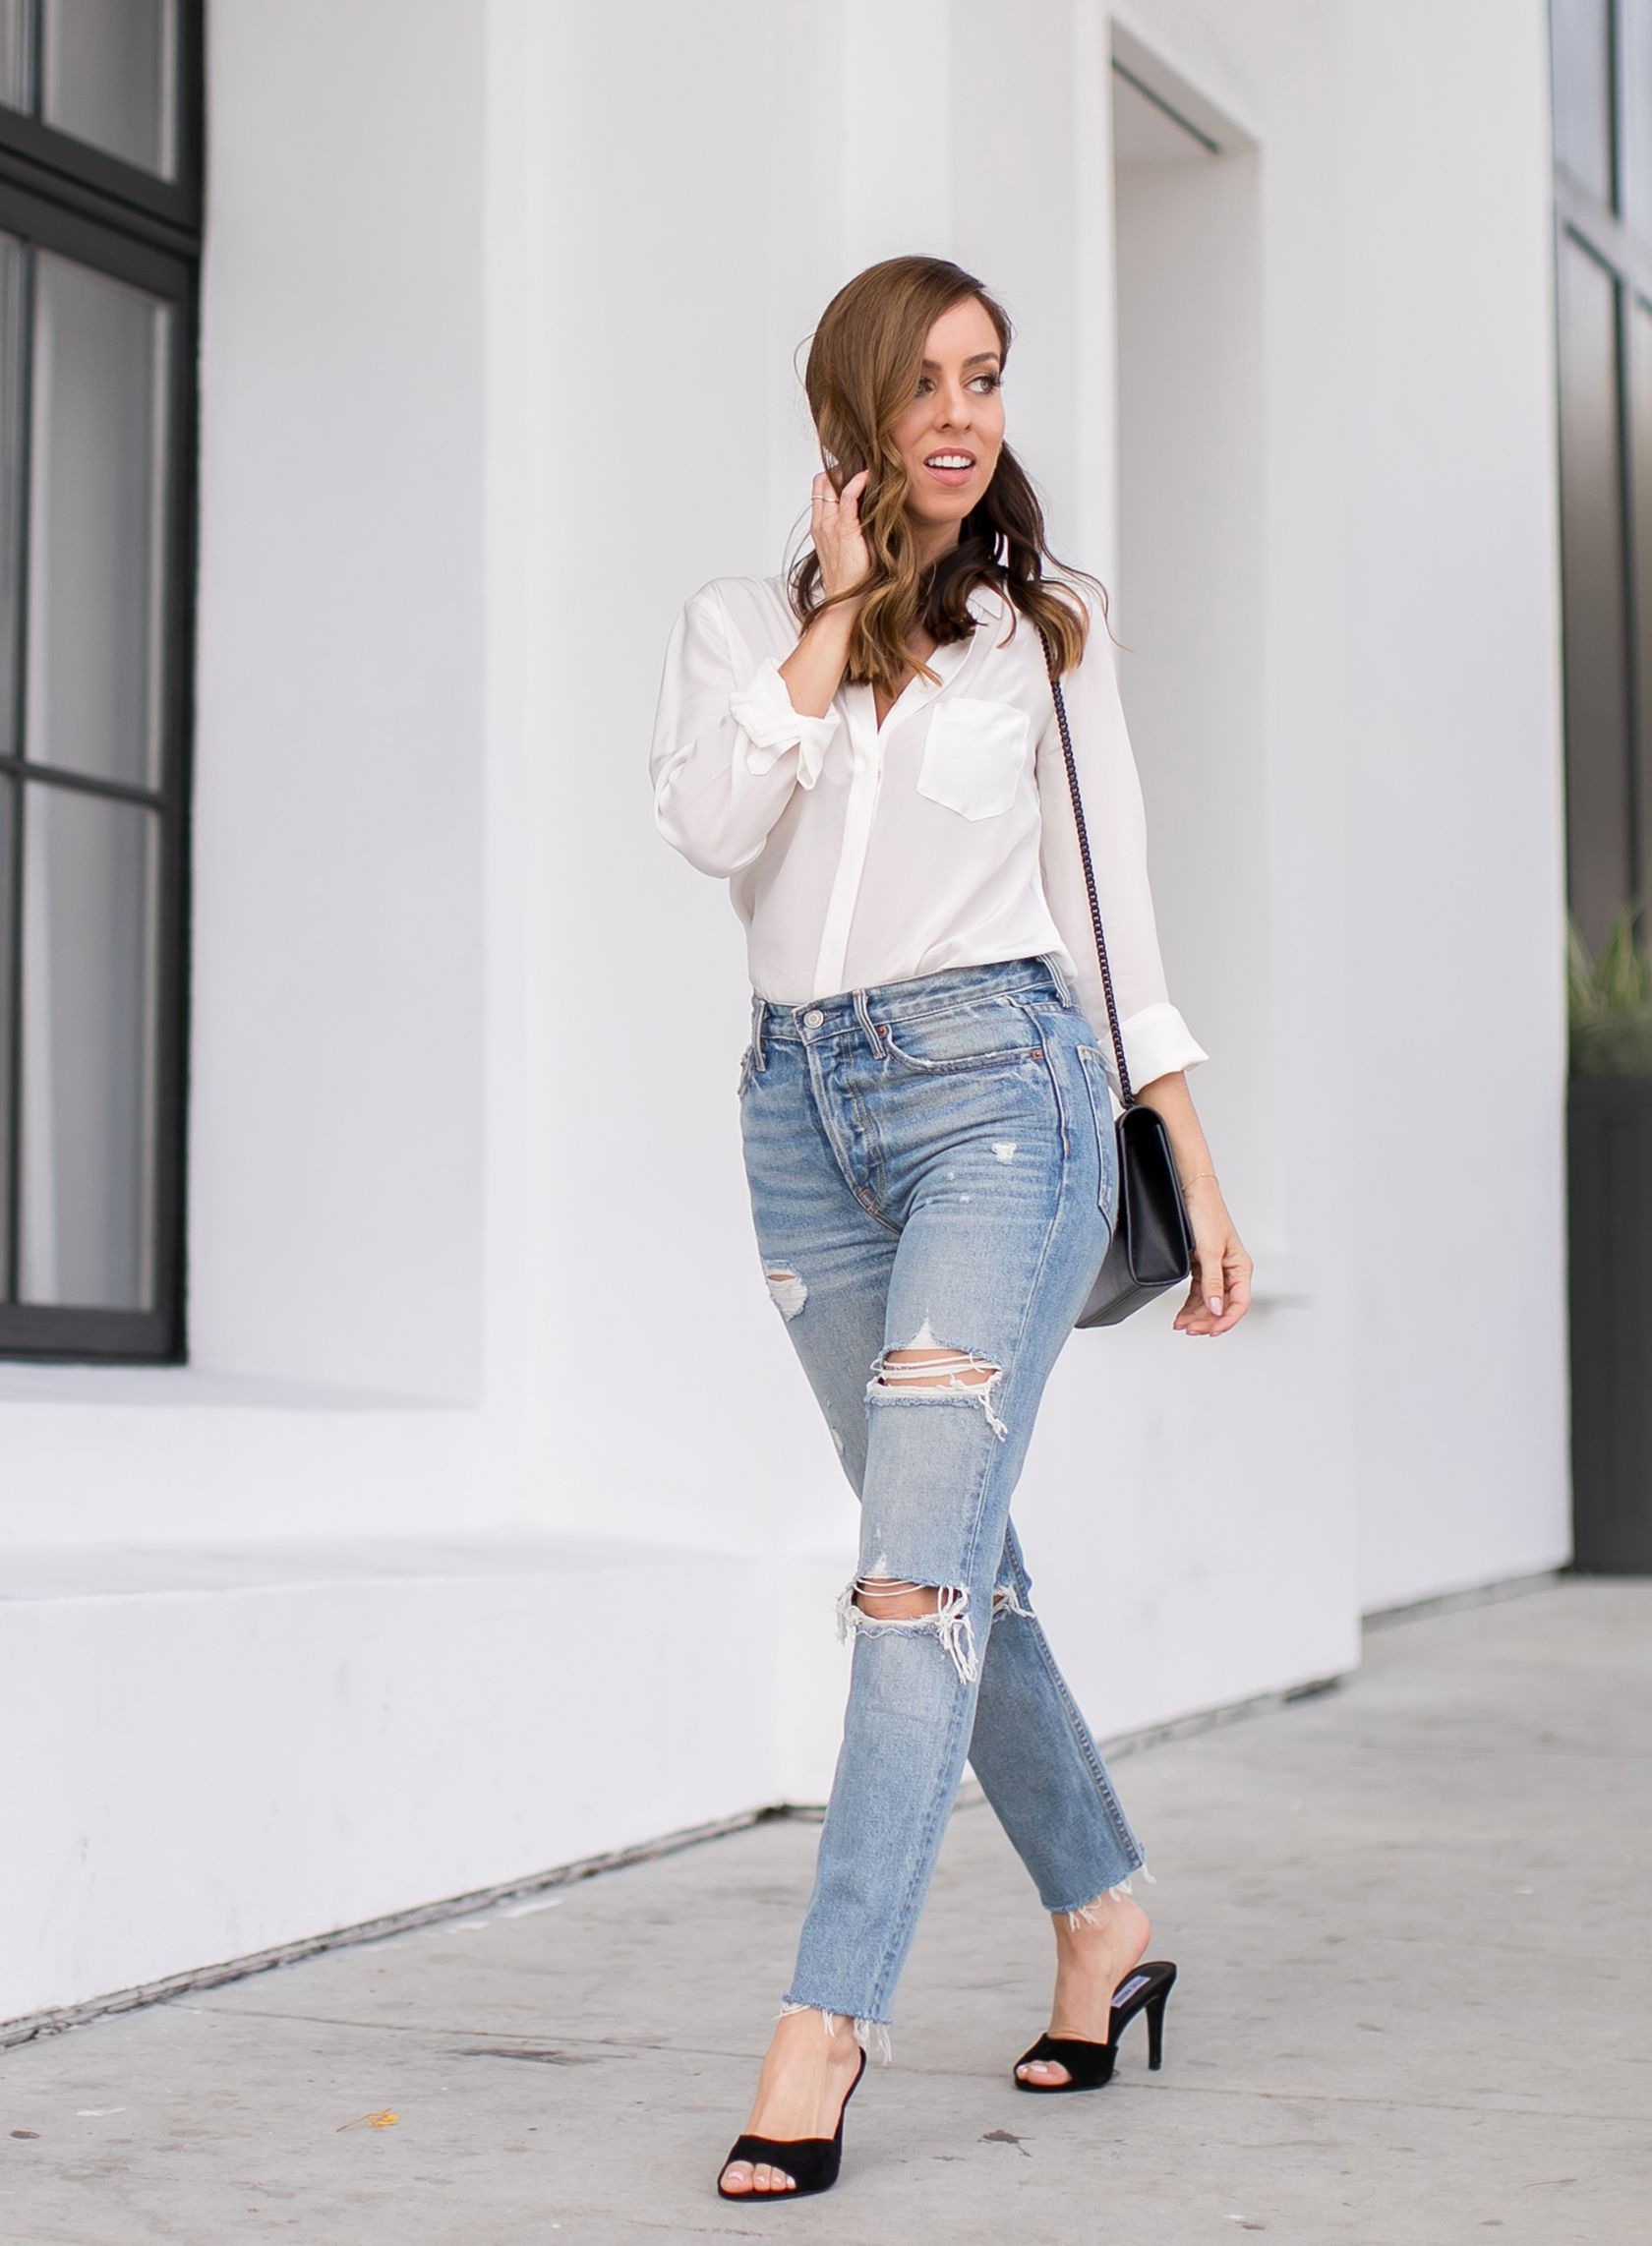 881f4202258a Sydne Style shows classic casual outfit ideas in j. crew white button down  shirt #jeans #casualstyle #classicstyle #classic #buttondown @sydnesummer